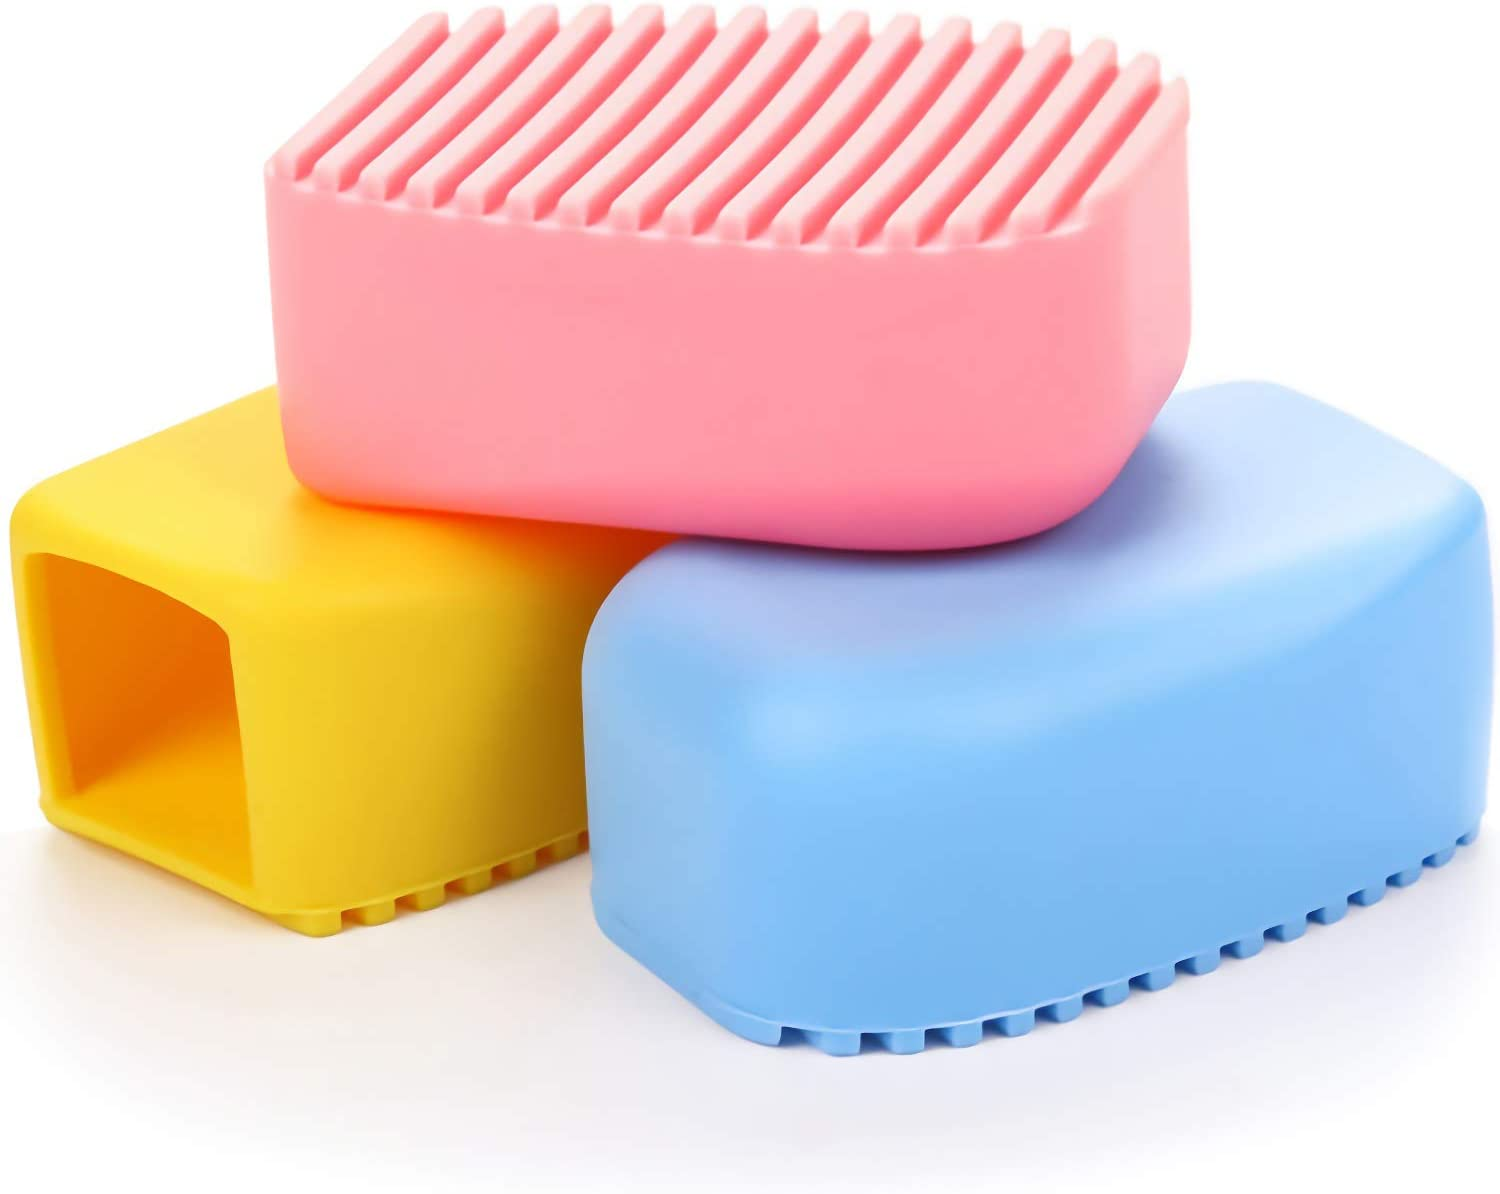 AnFun 3 Pieces Silicone Washboard Creative Mini Antiskid Handheld Laundry Brush Scruber Washboard Candy Color Blue and Pink Wash Clothes Collar Furniture Stain Removal